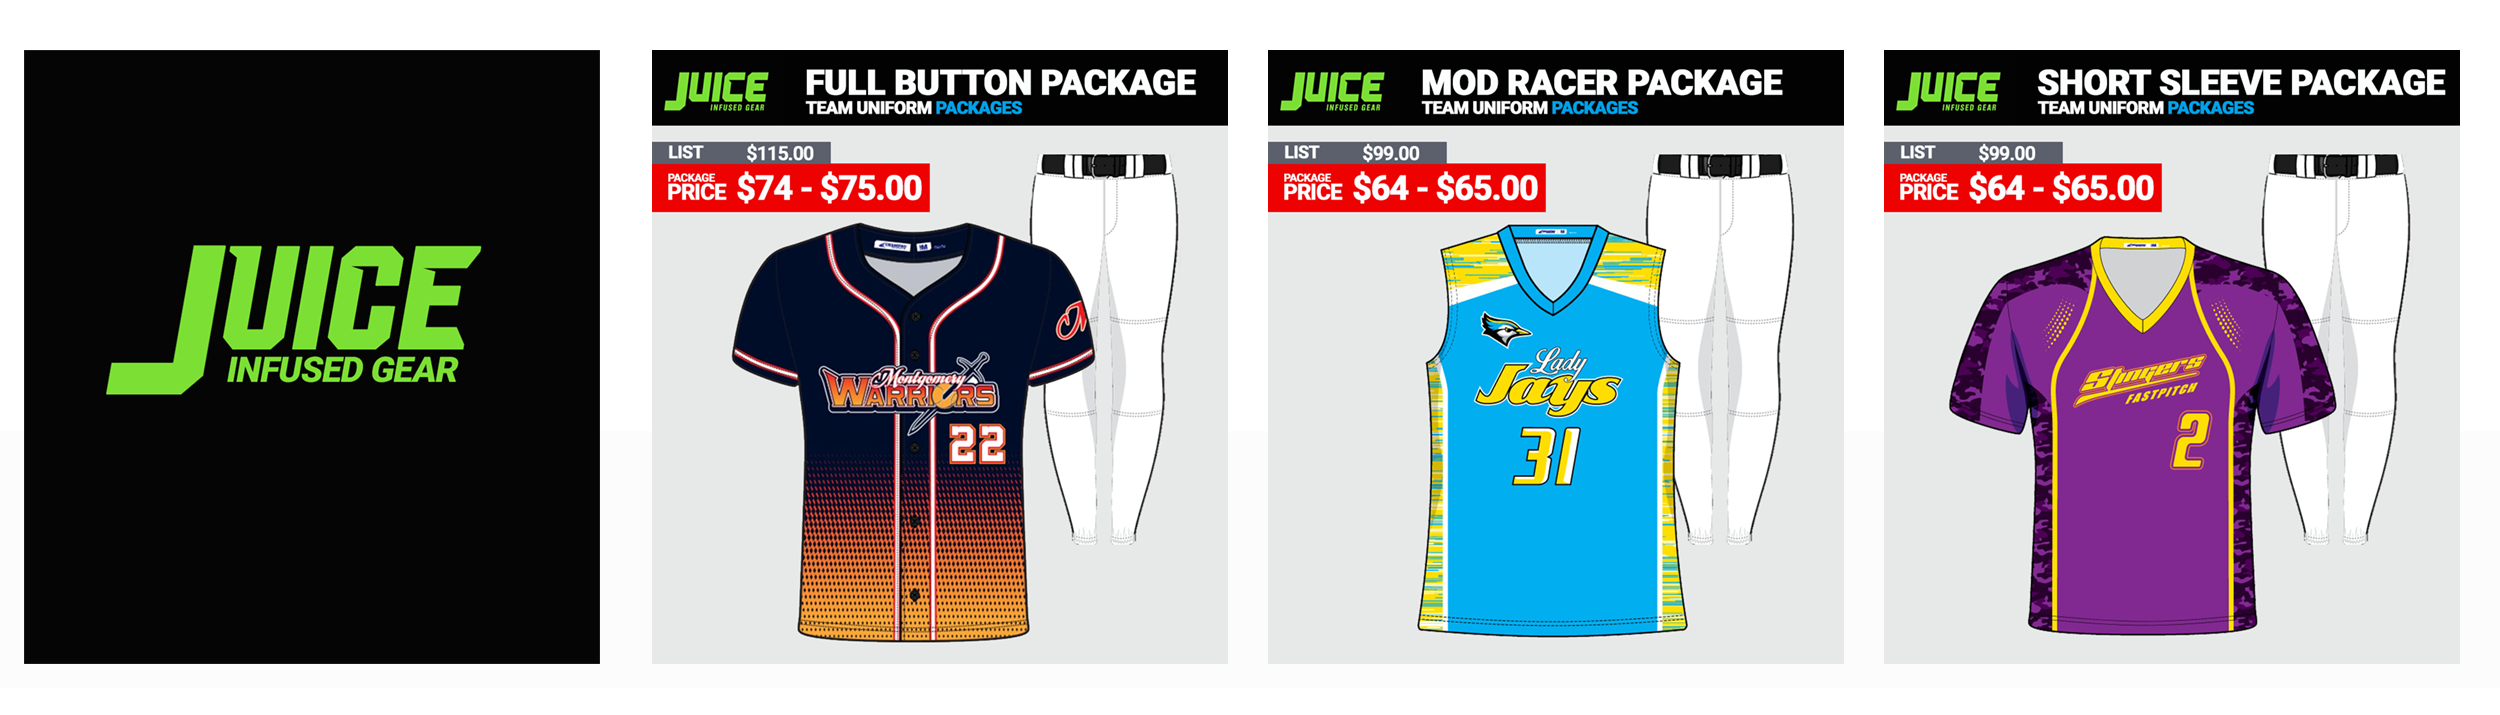 Champro Juice Softball Uniforms